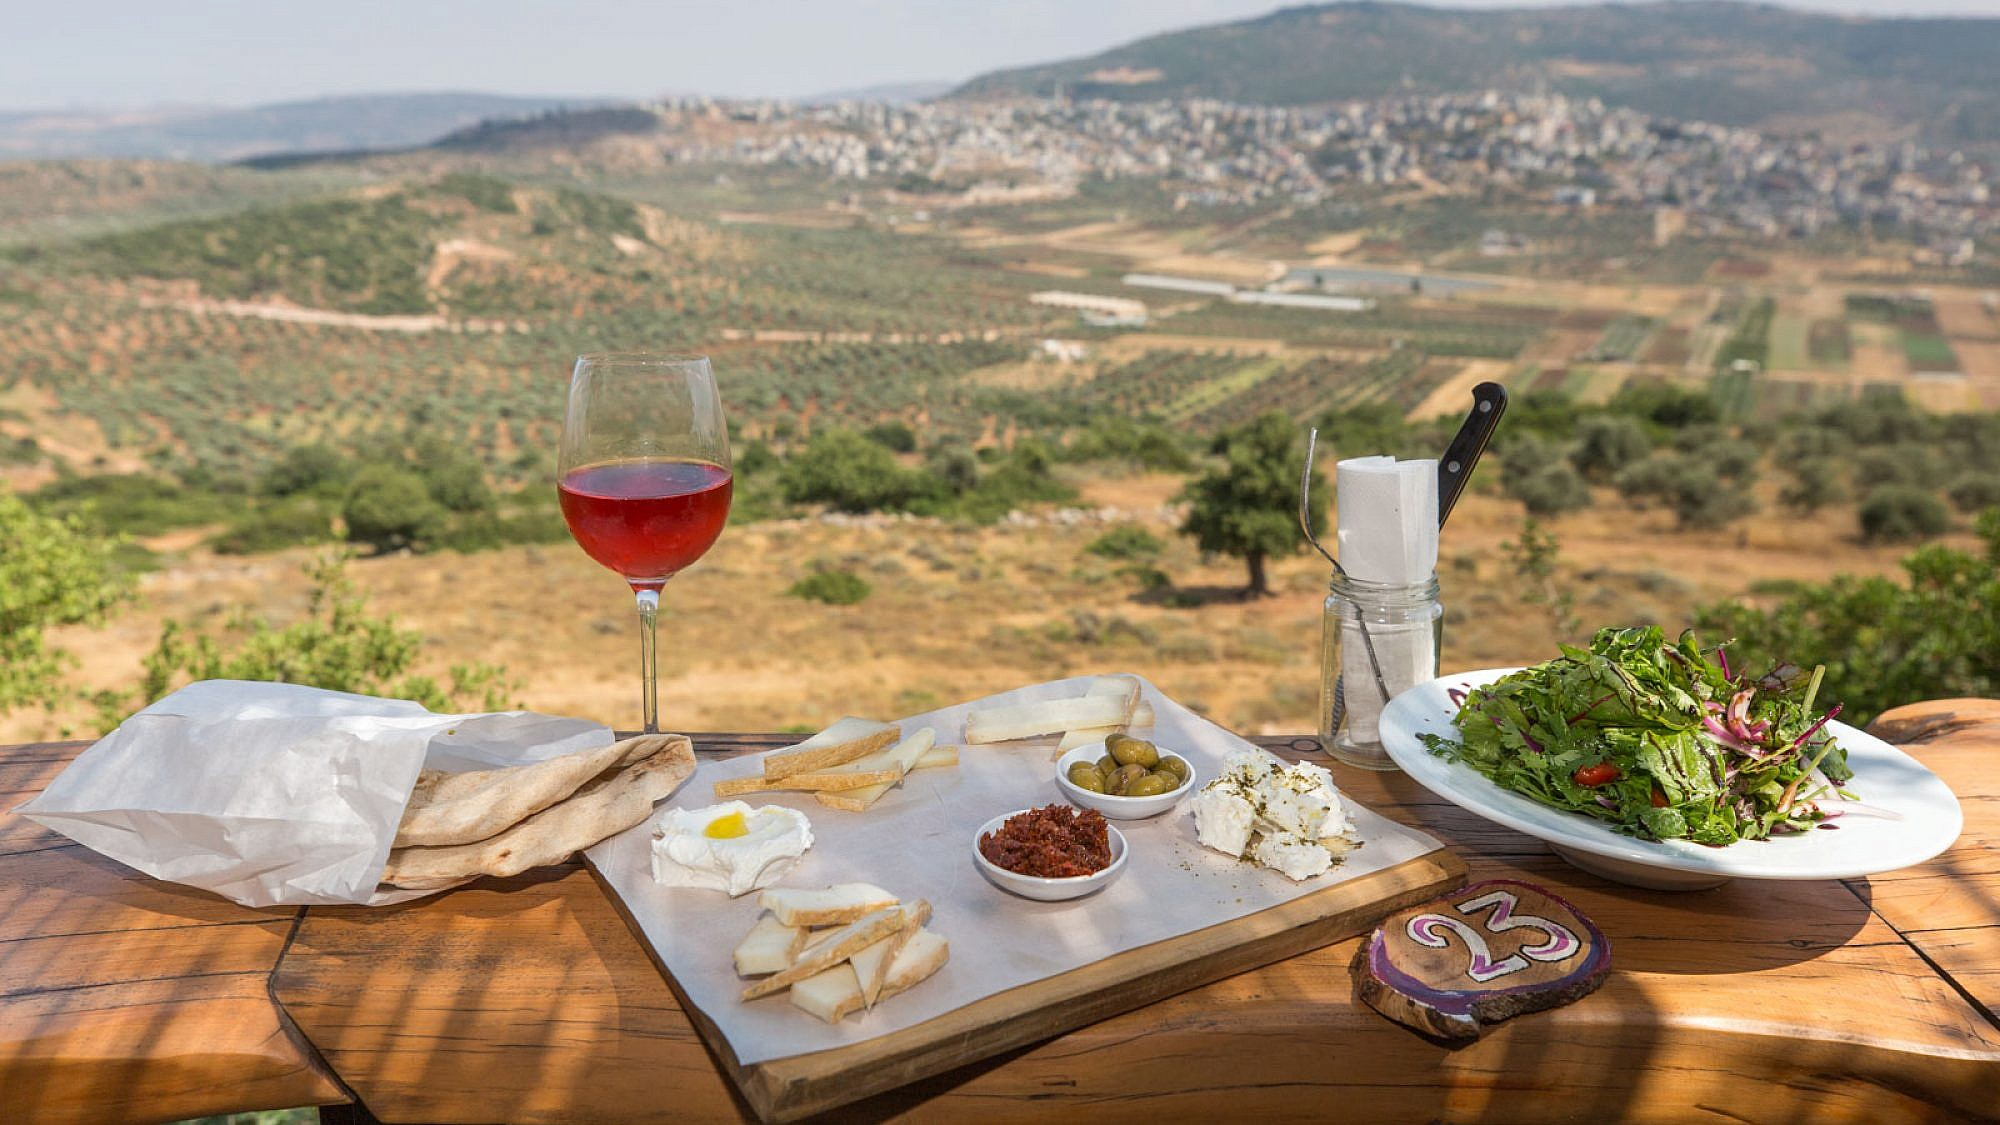 A view of Israel's Lotem Winery in the Galilee. Photo by Dror Arzi.